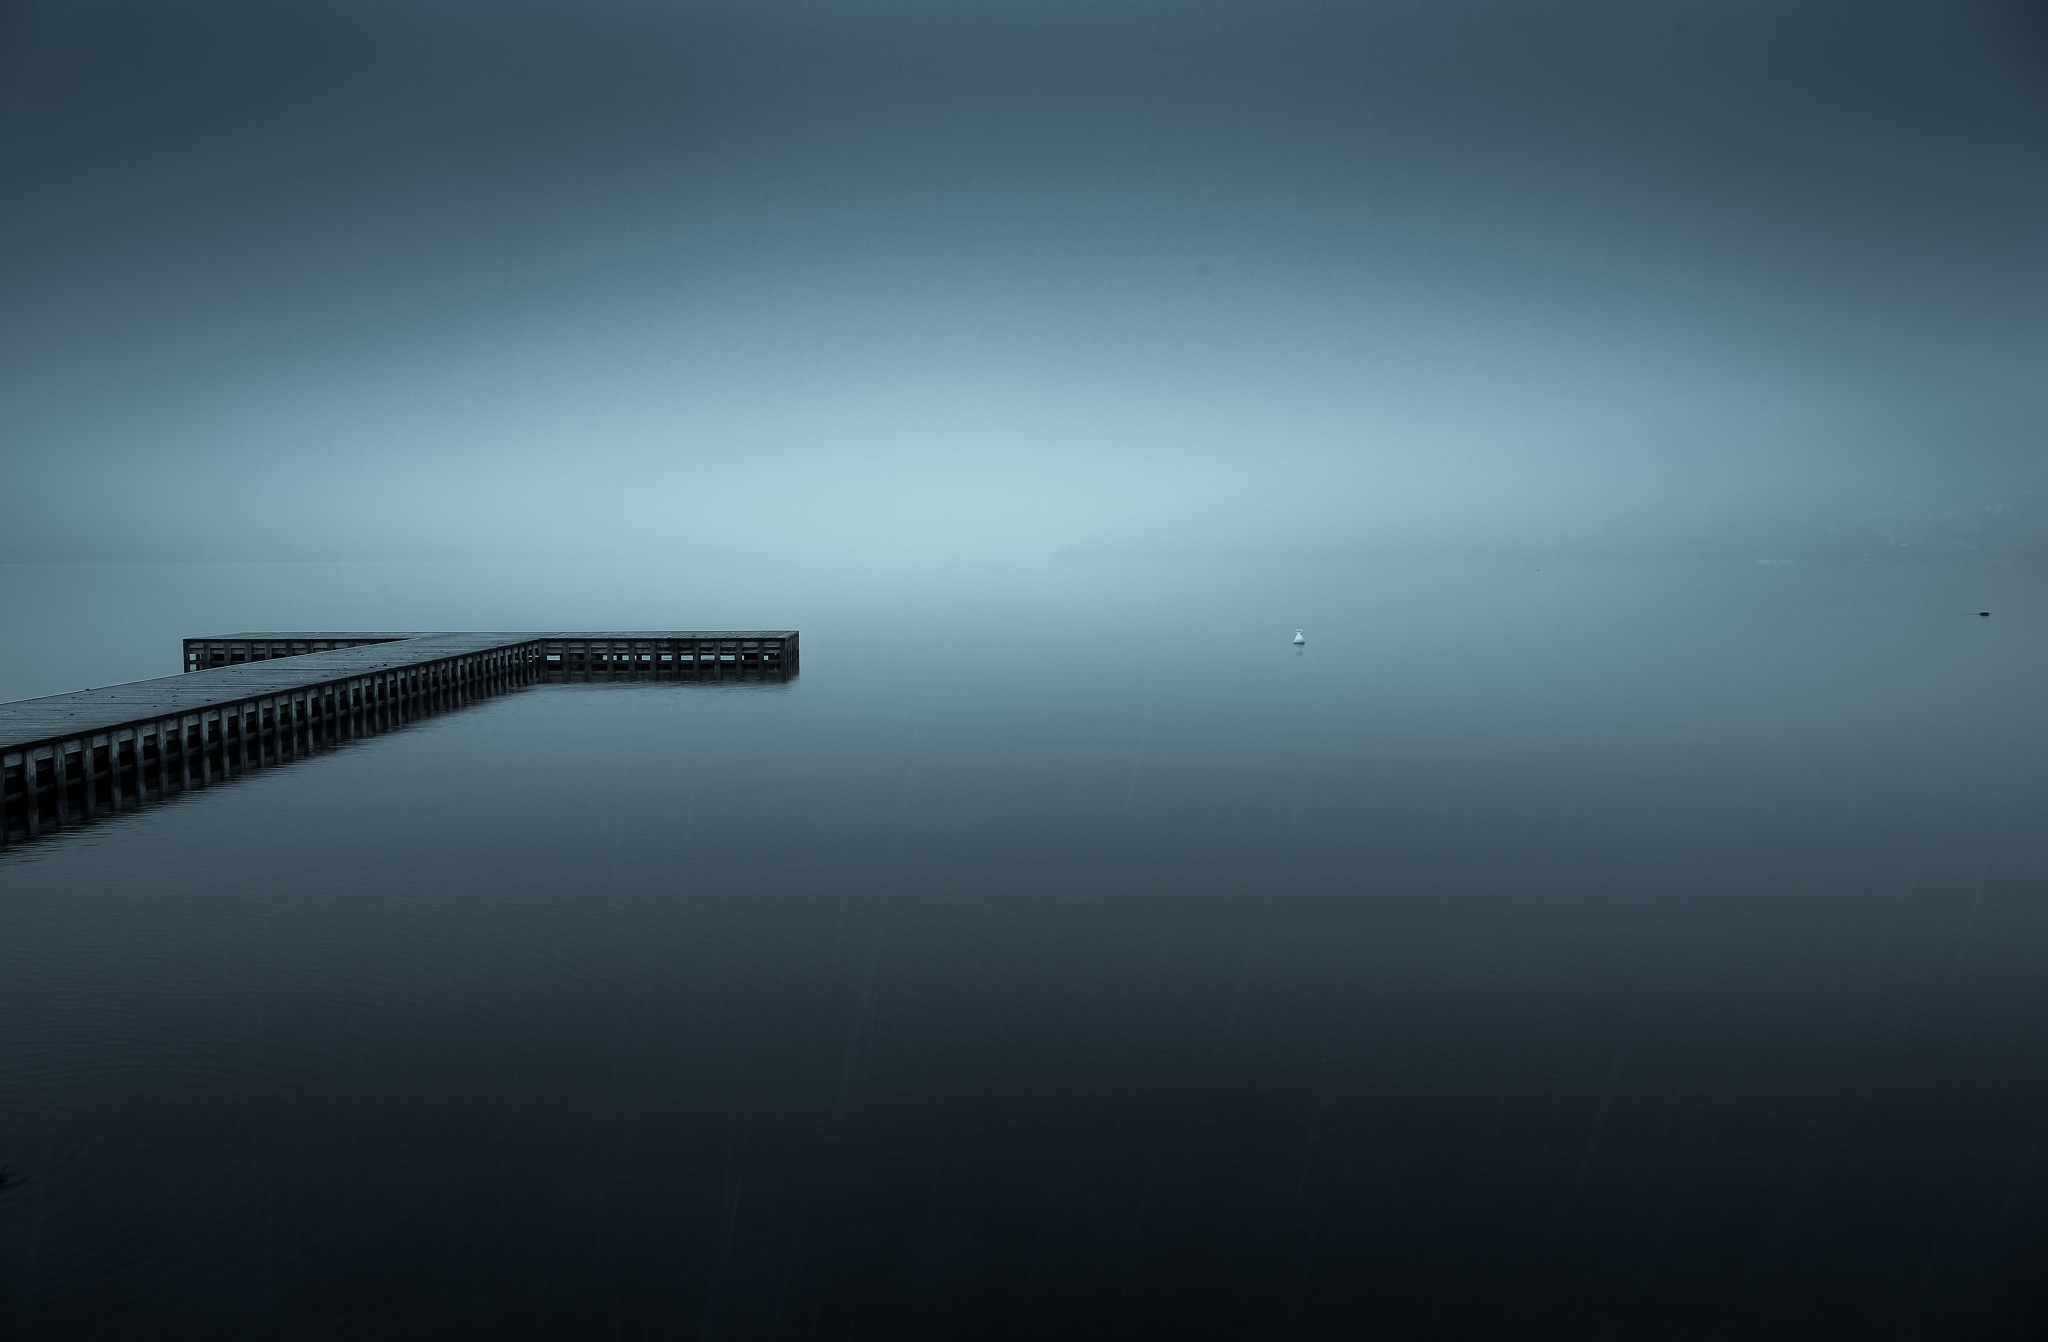 pontile by Willmax